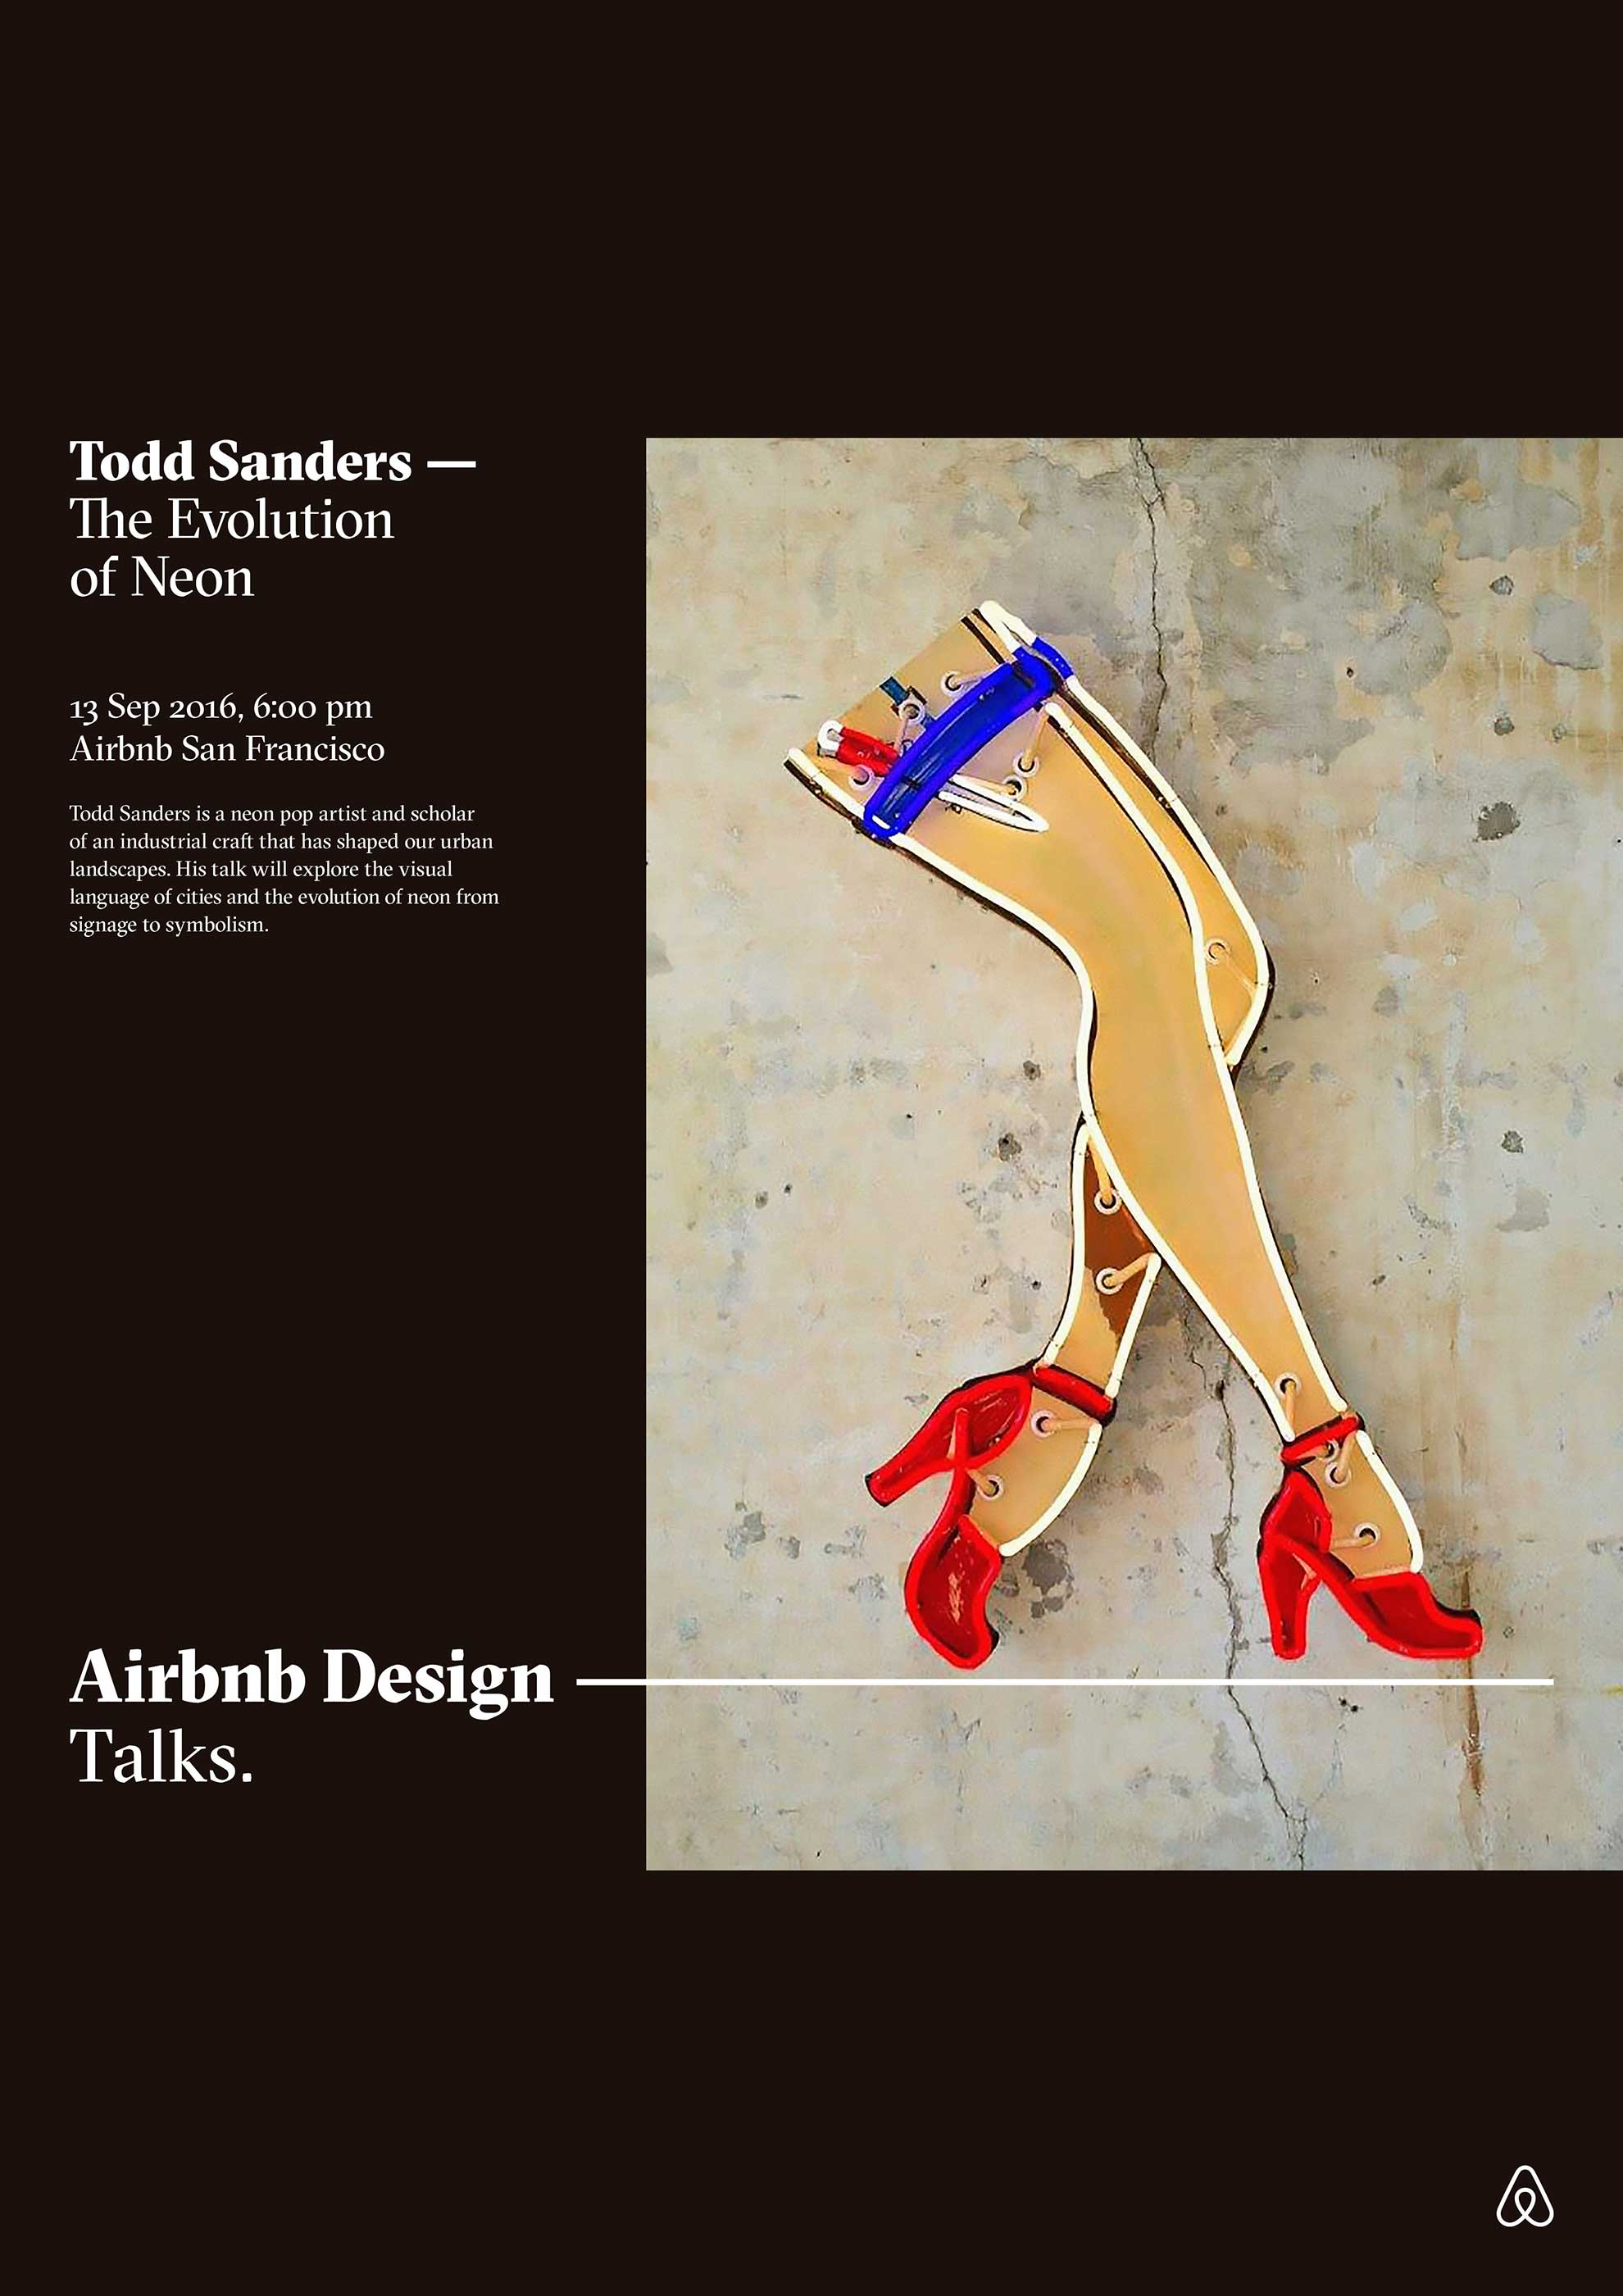 A design poster for the Todd Sanders Airbnb Design talk. The title reads, the evolution of neon.